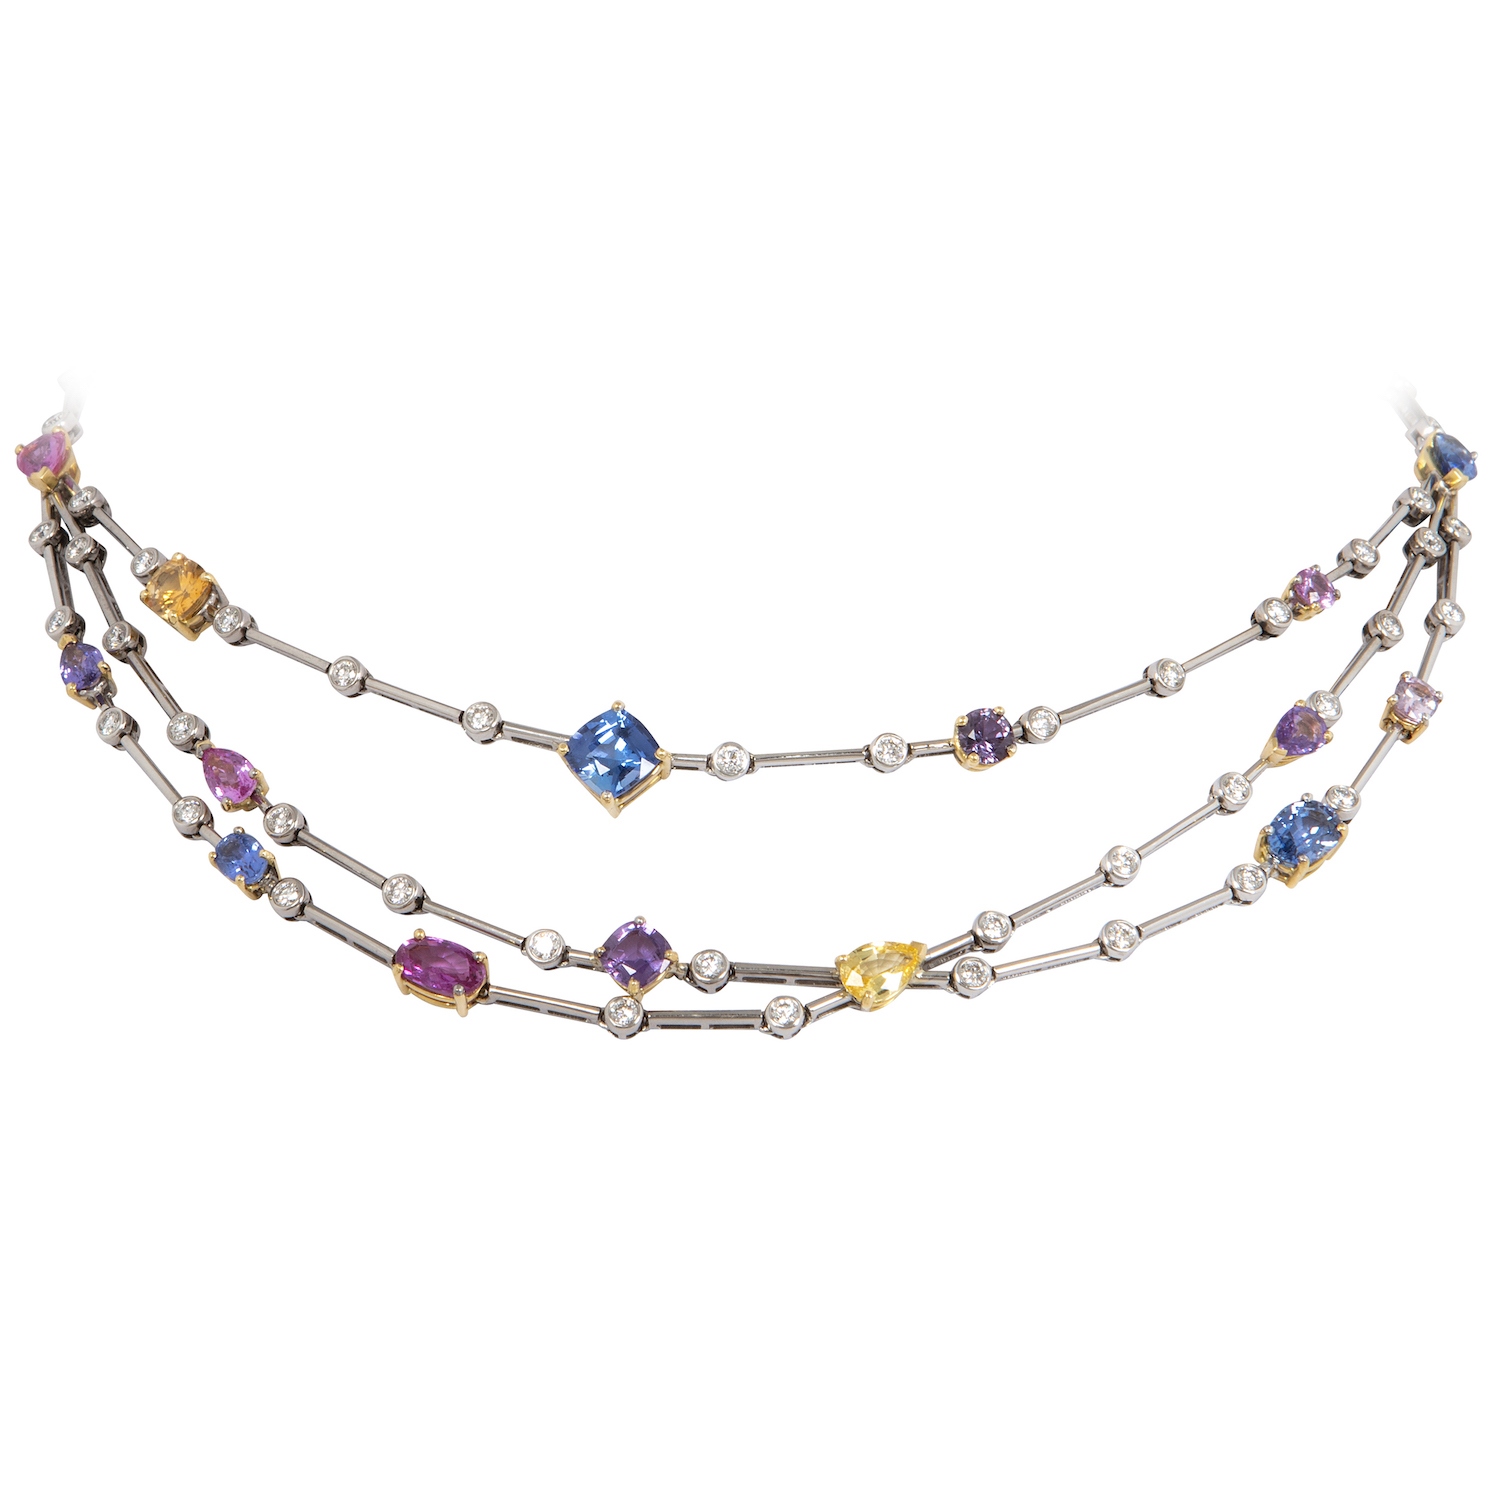 A necklace composed of multi coloured sapphires and diamonds set in white gold.